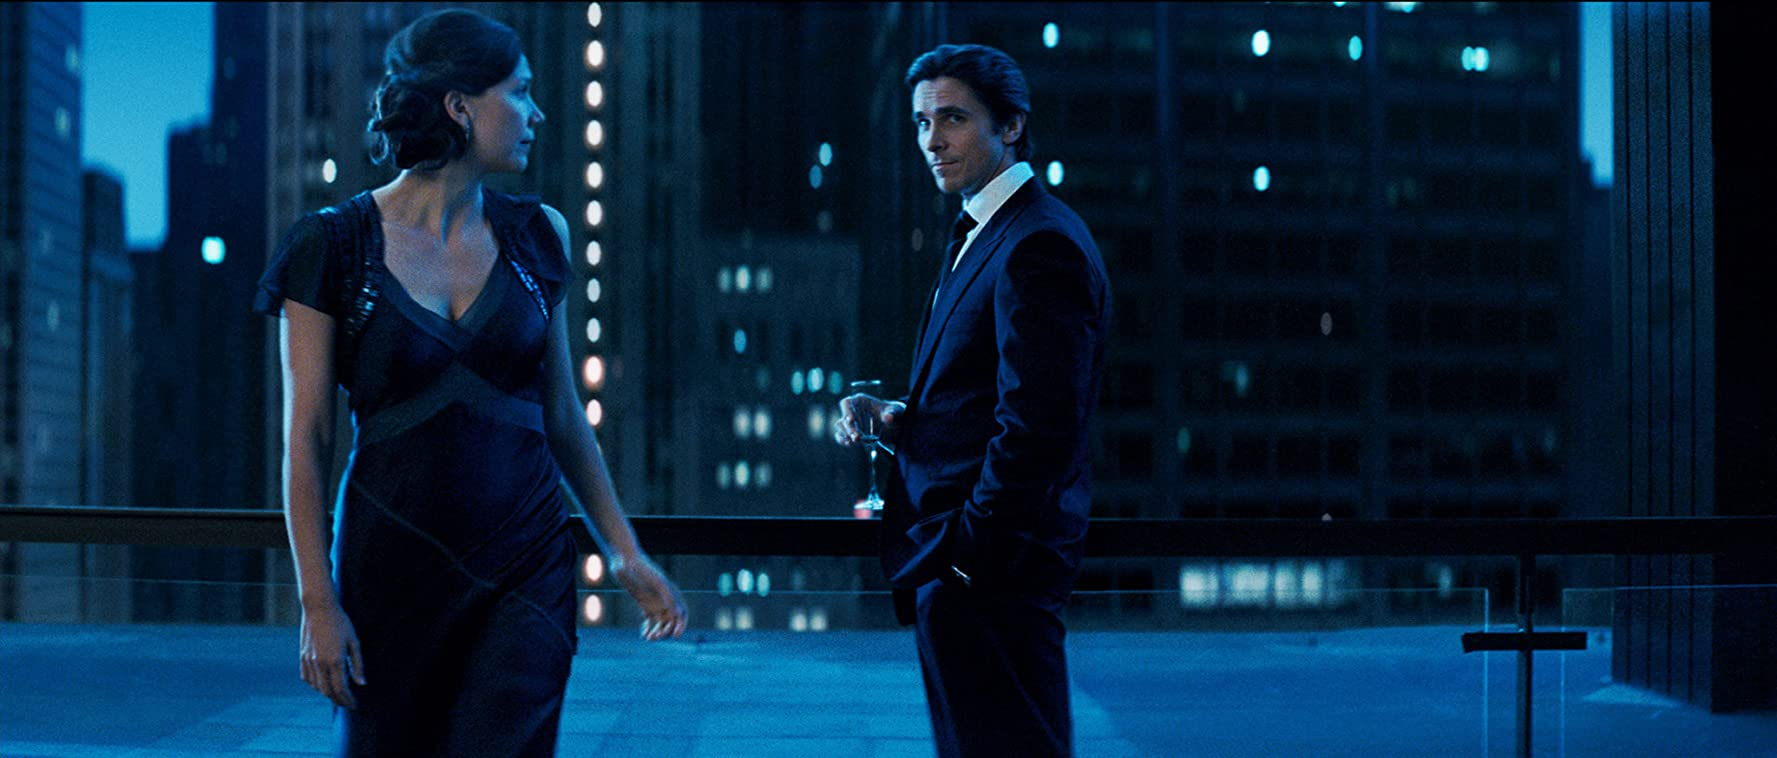 Christian Bale and Maggie Gyllenhaal in The Dark Knight (2008)